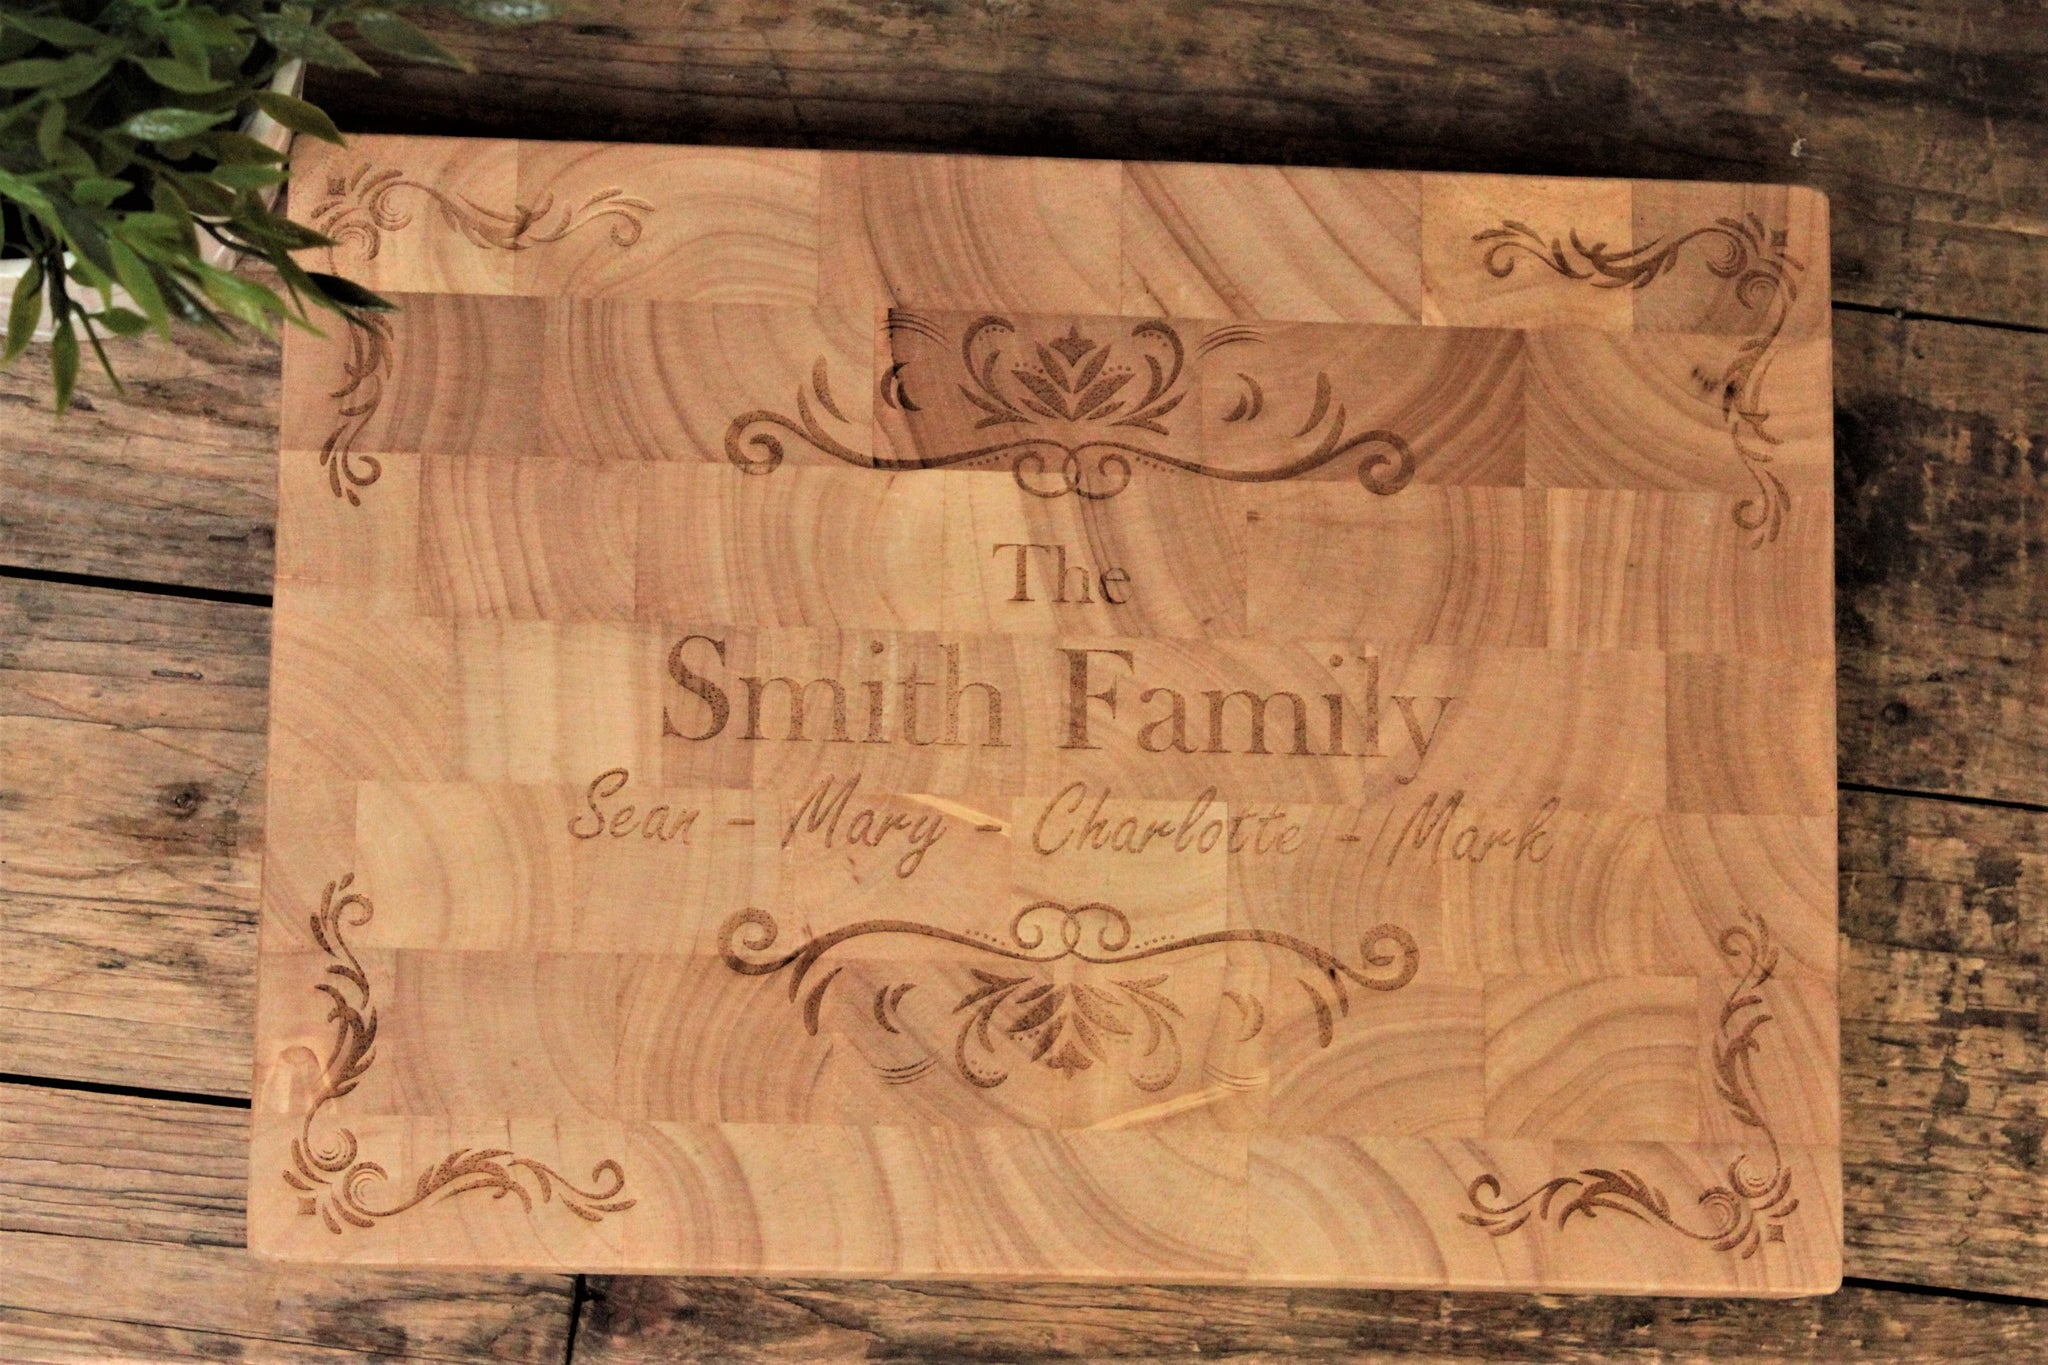 Personalised this Hevea wood endgrain butchers block with your family name and family members. Perfect as a display piece for your kitchen or as a centrepiece to family meals and dinner parties.